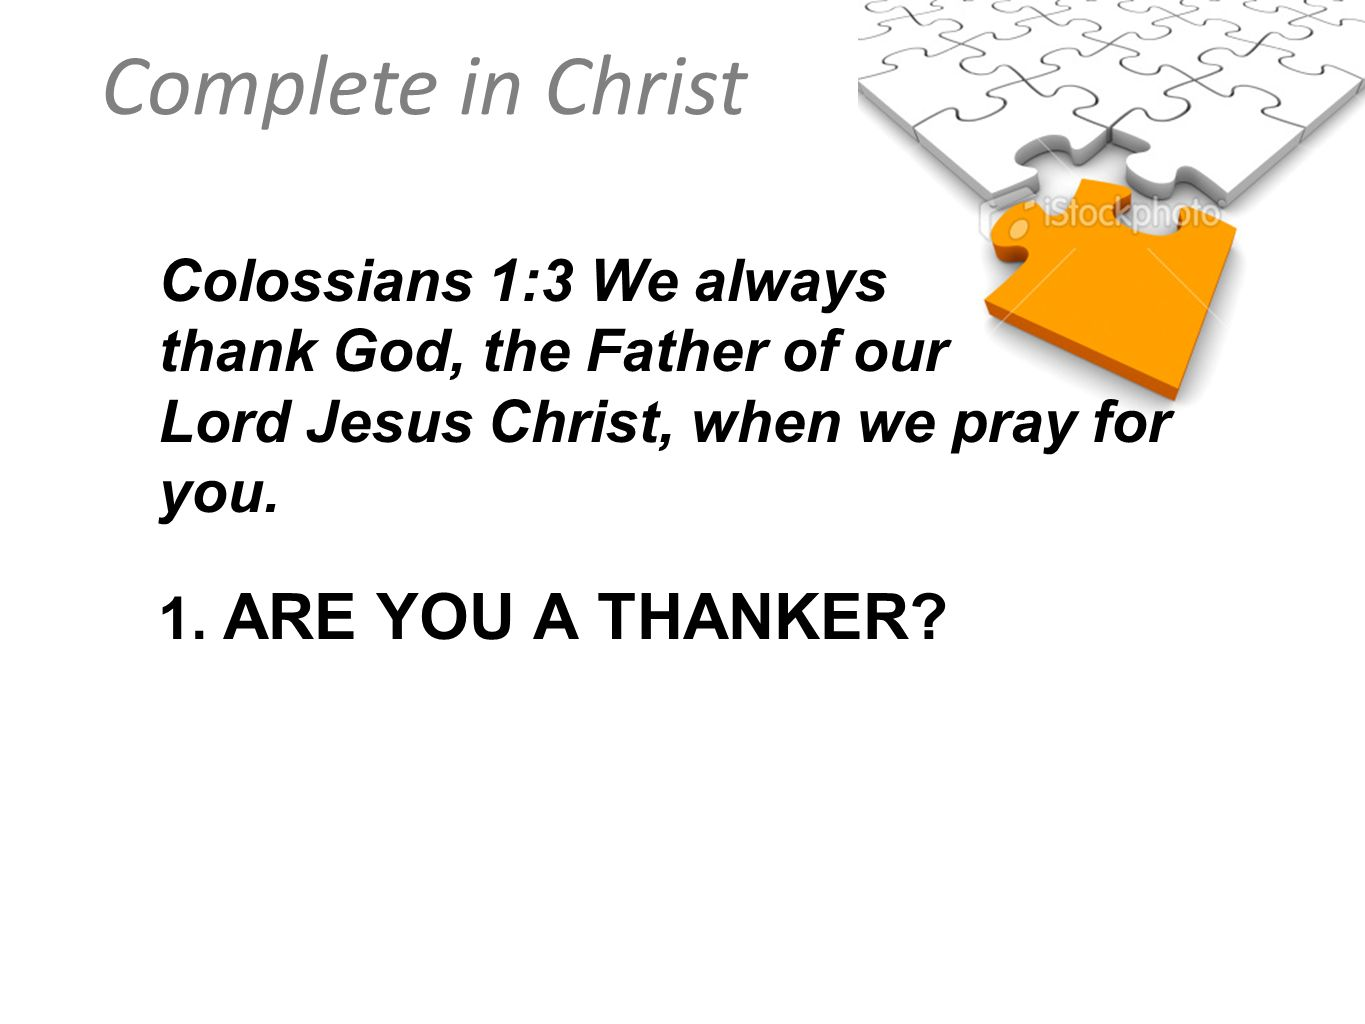 Colossians 1:3 We always thank God, the Father of our Lord Jesus Christ, when we pray for you.